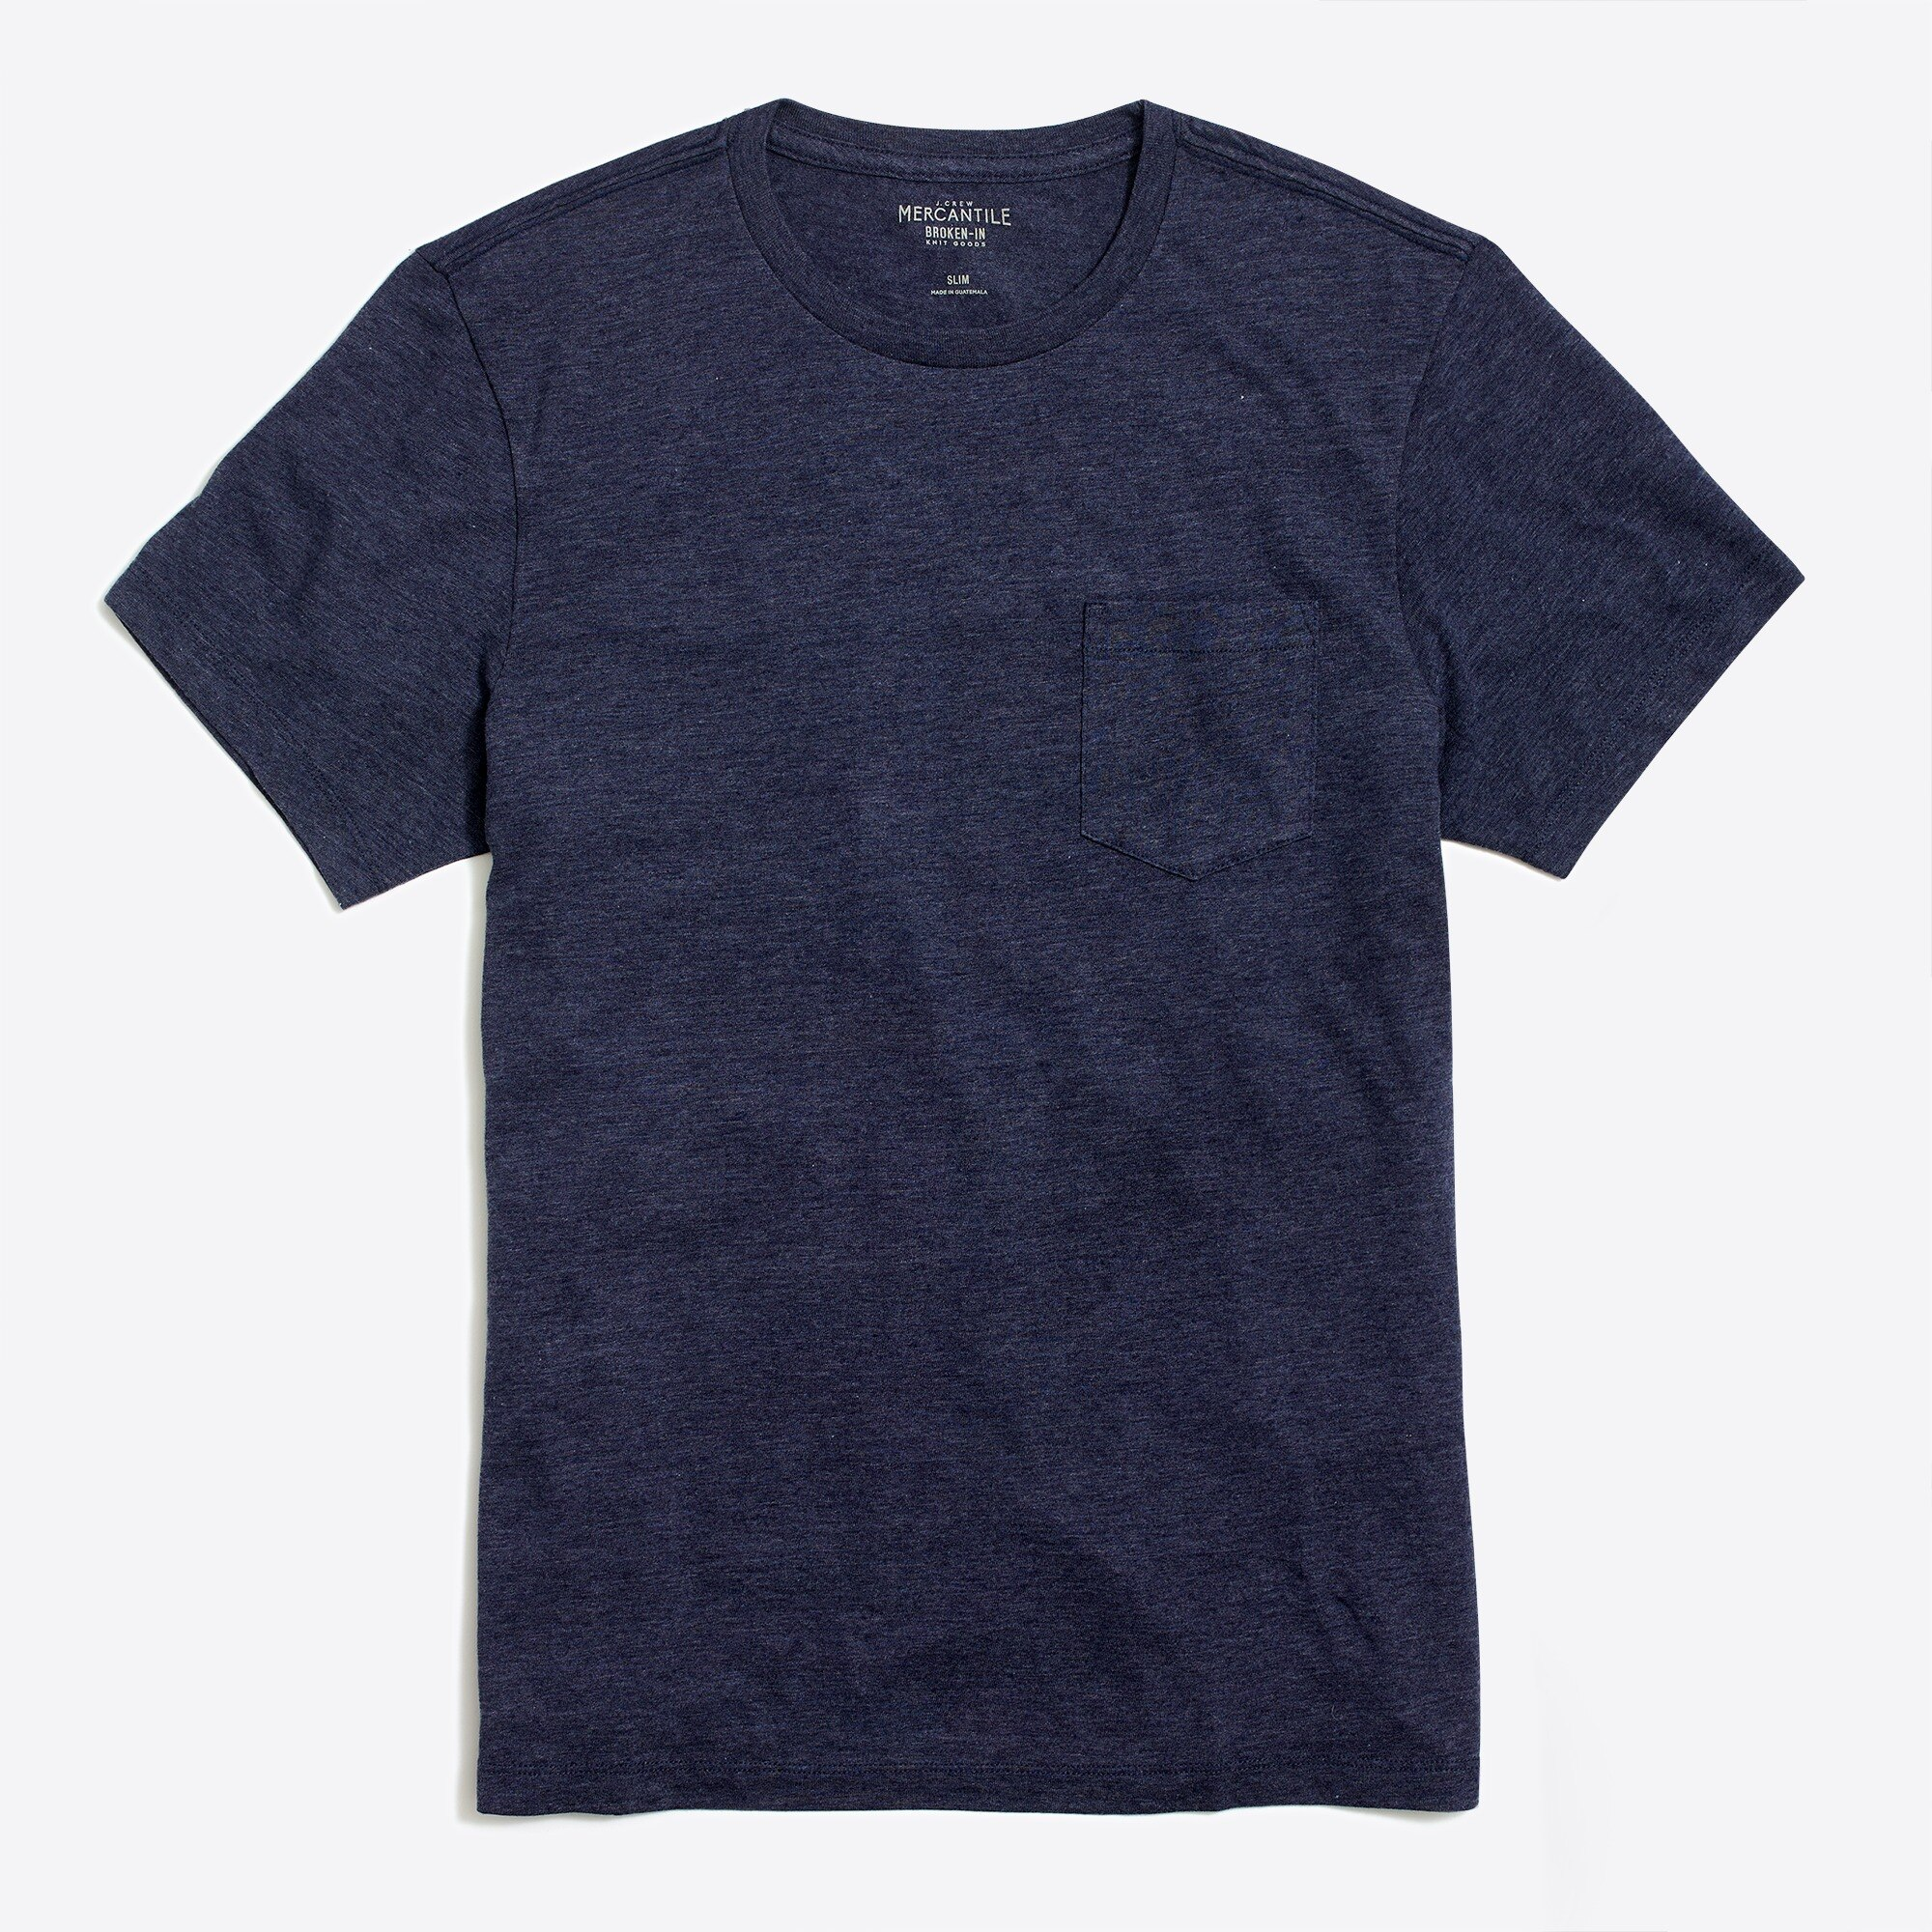 J.Crew Mercantile slim heathered washed pocket T-shirt factorymen t-shirts & henleys c